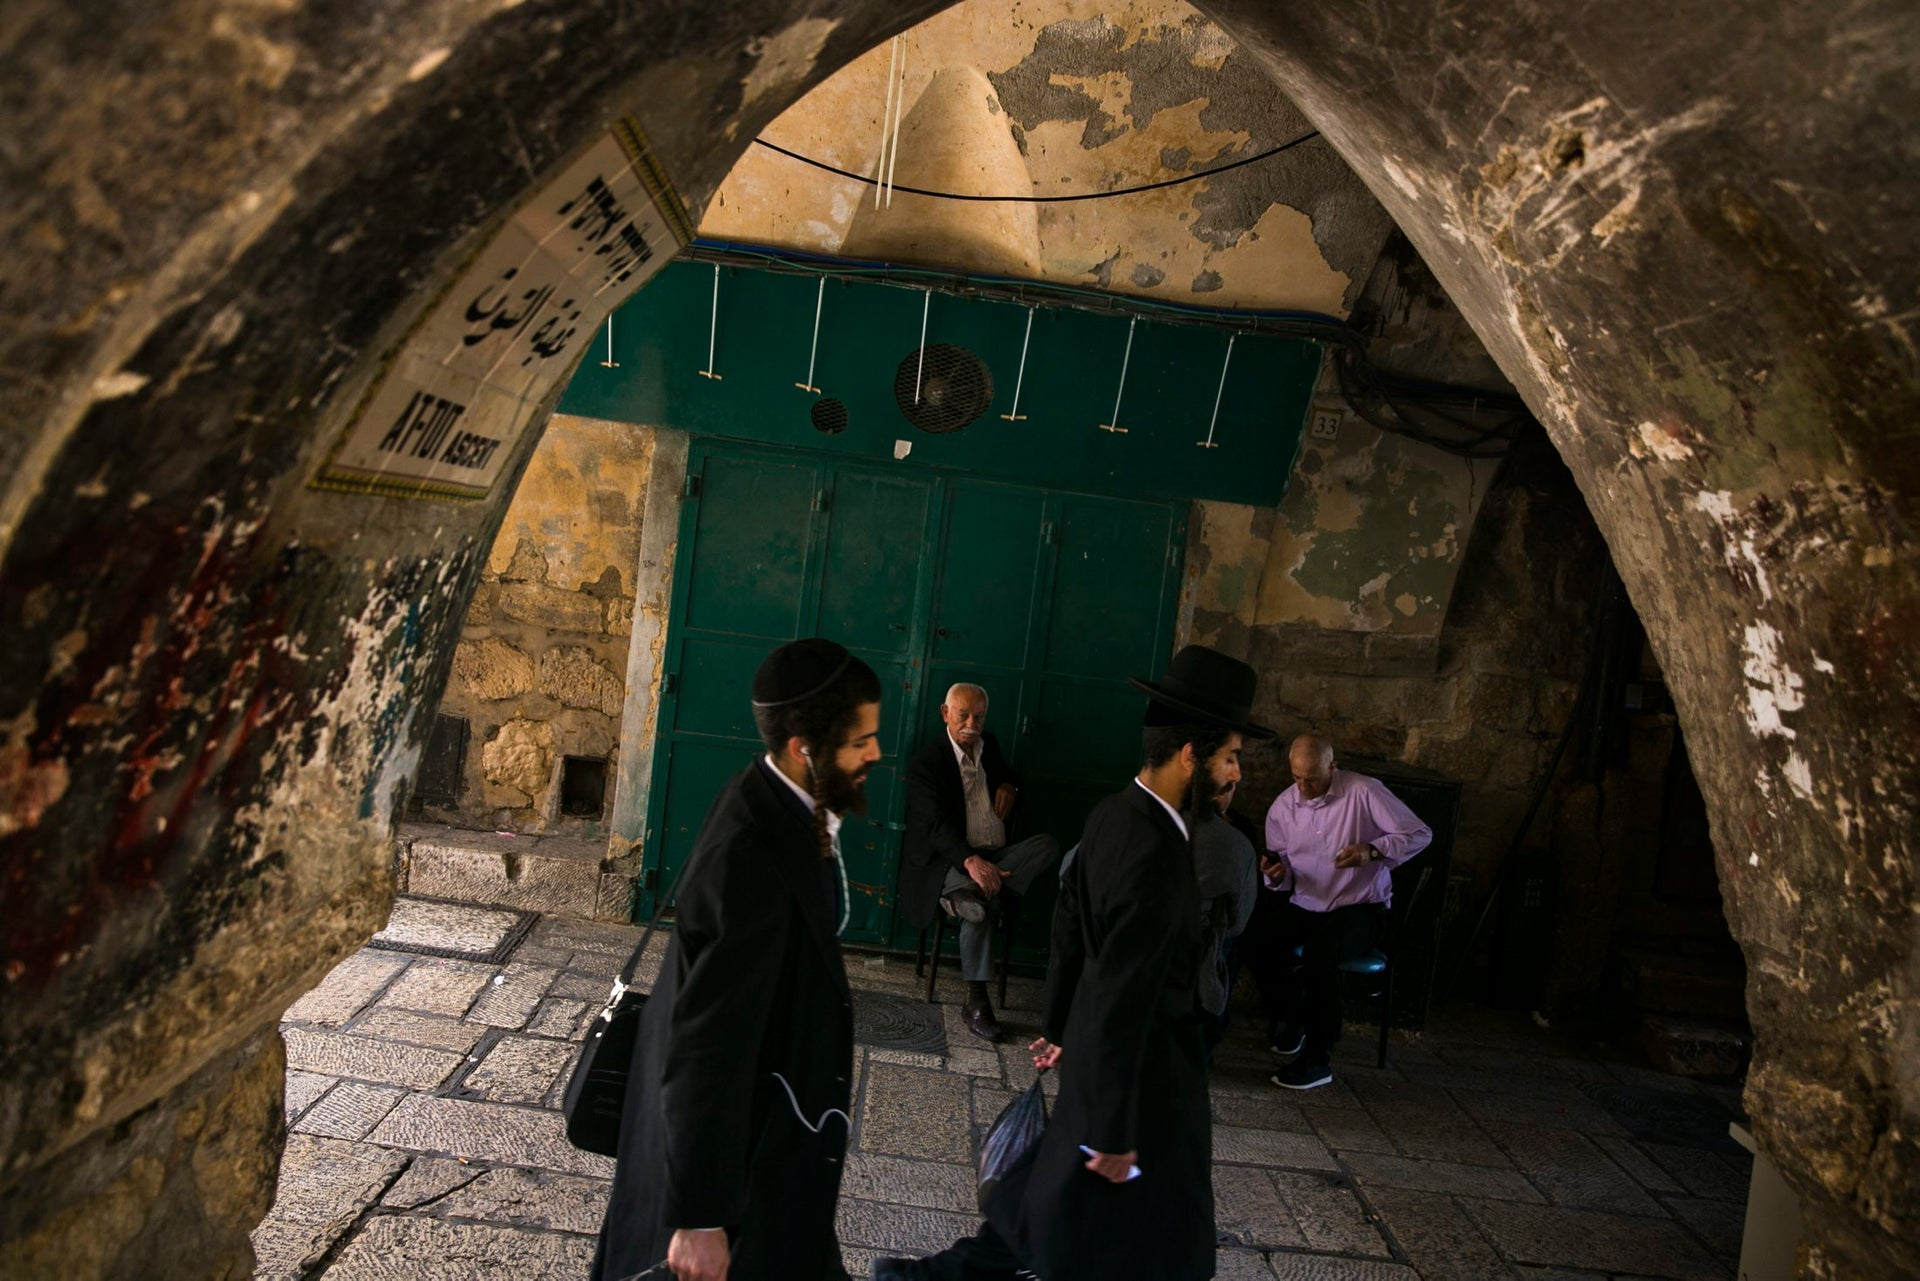 The old city in Jerusalem. Jewish managers and employees often demonstrate solidarity with Palestinian workers.